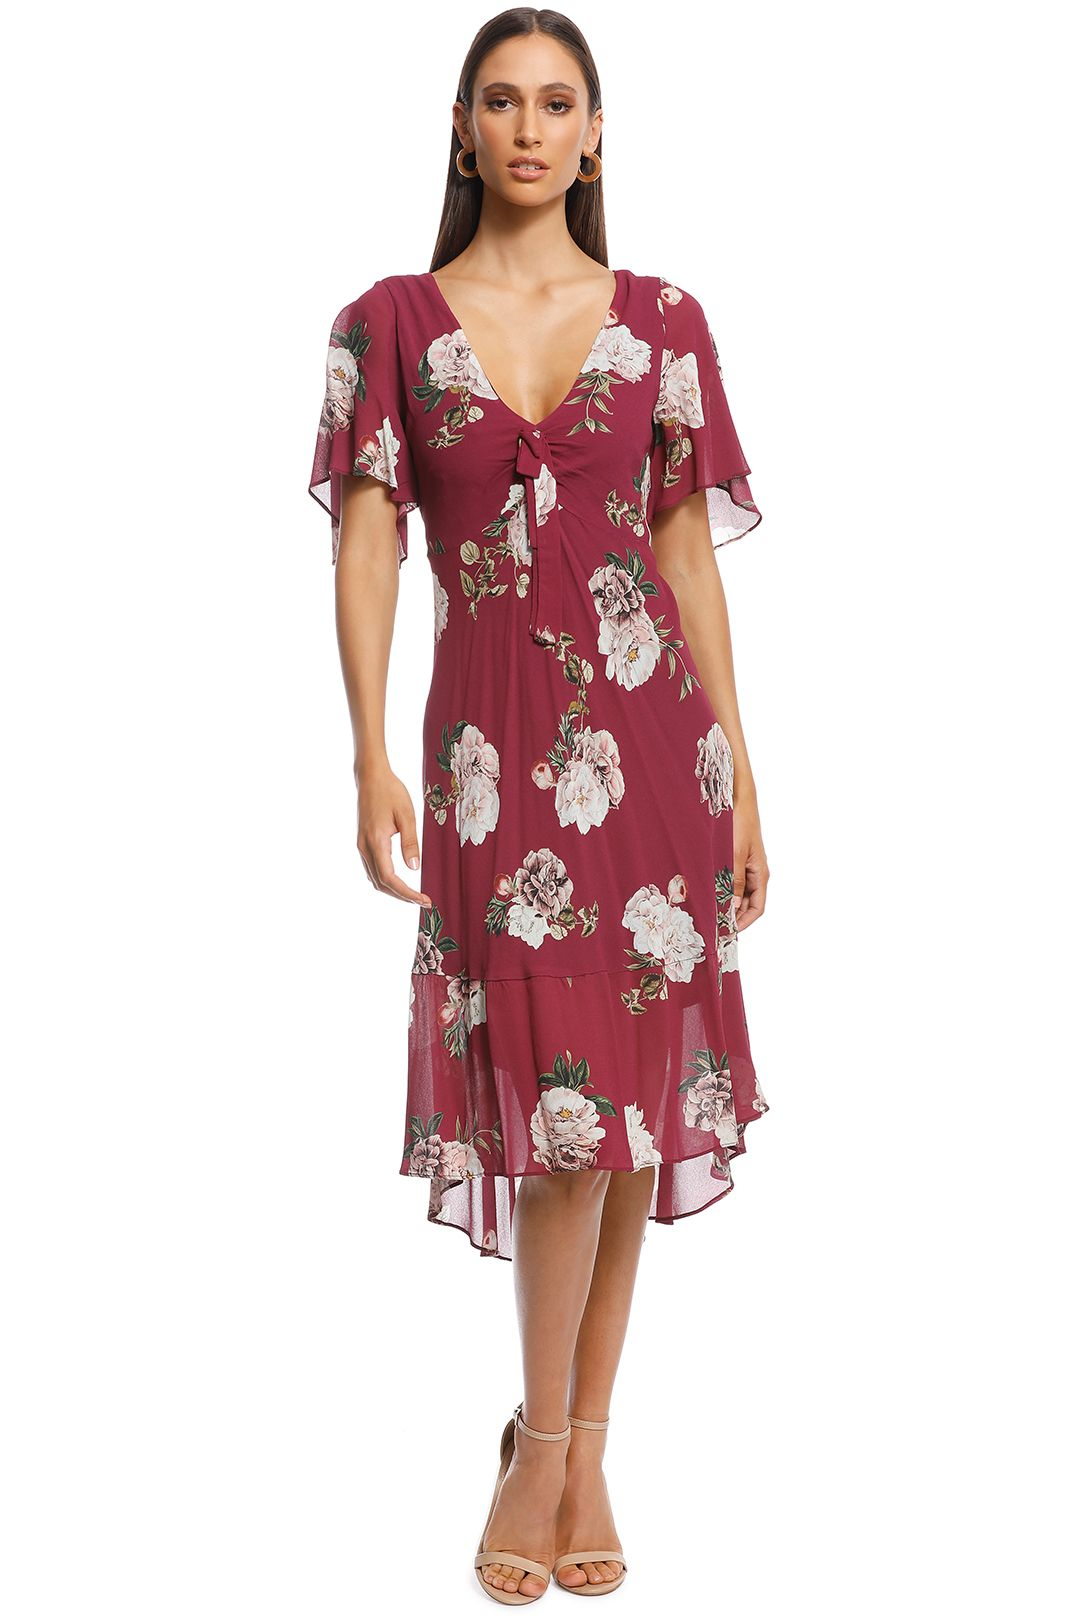 Pasduchas - Botanical Midi Dress - Berry - Front